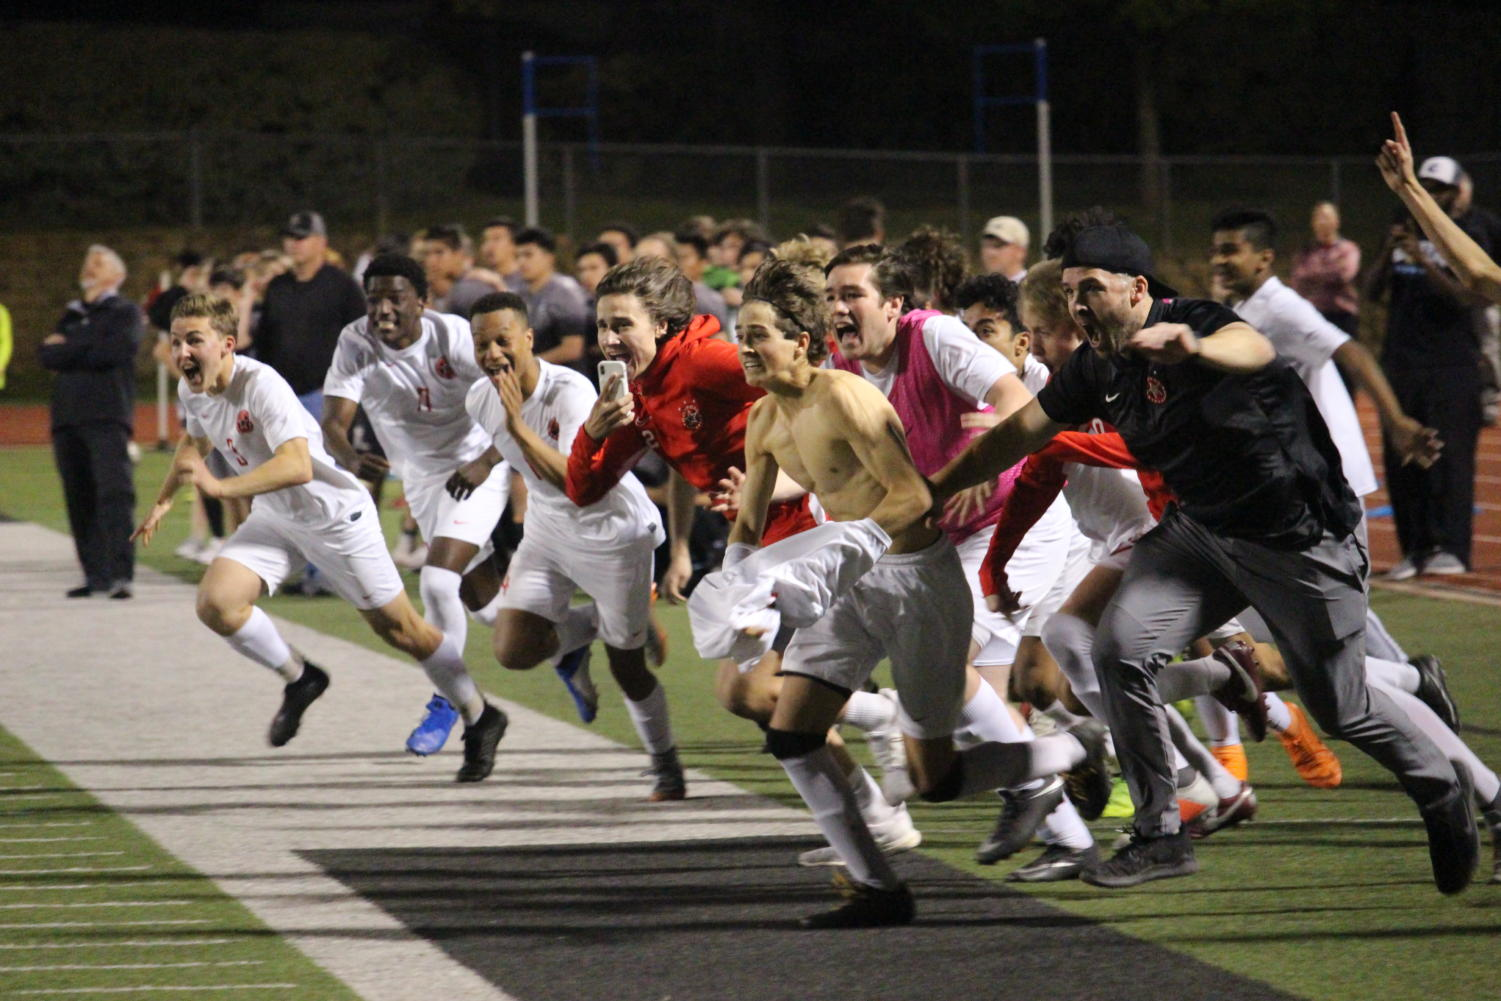 +The+Coppell+boys+soccer+team+celebrates+after+senior+goalie+Austin+Simigian+blocks+Denton+Guyer%E2%80%99s+Penalty+kick+to+steal+the+victory+for+the+Cowboys+at+Falcon+Stadium+in+Lake+Dallas.+After+a+scoreless+regulation+and+two+overtime+periods%2C+Coppell+won%2C++0-0+%284-3%29%2C+in+the+Class+6A+Region+I+bi-district+match